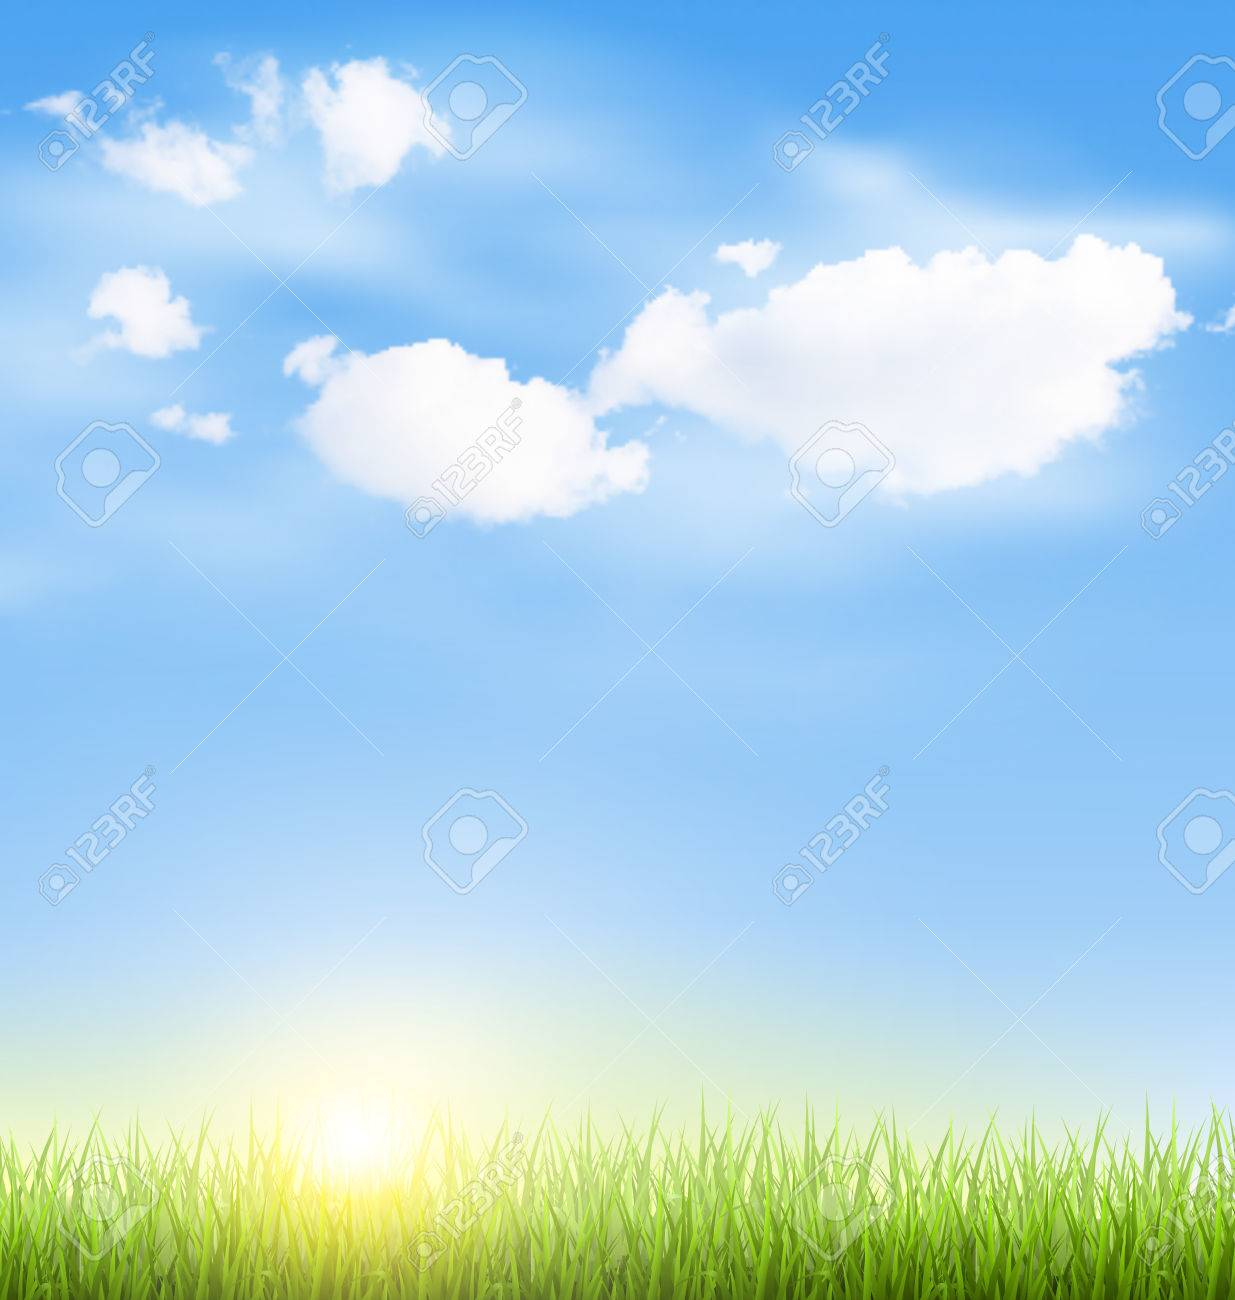 green grass lawn with clouds and sun on blue sky royalty free